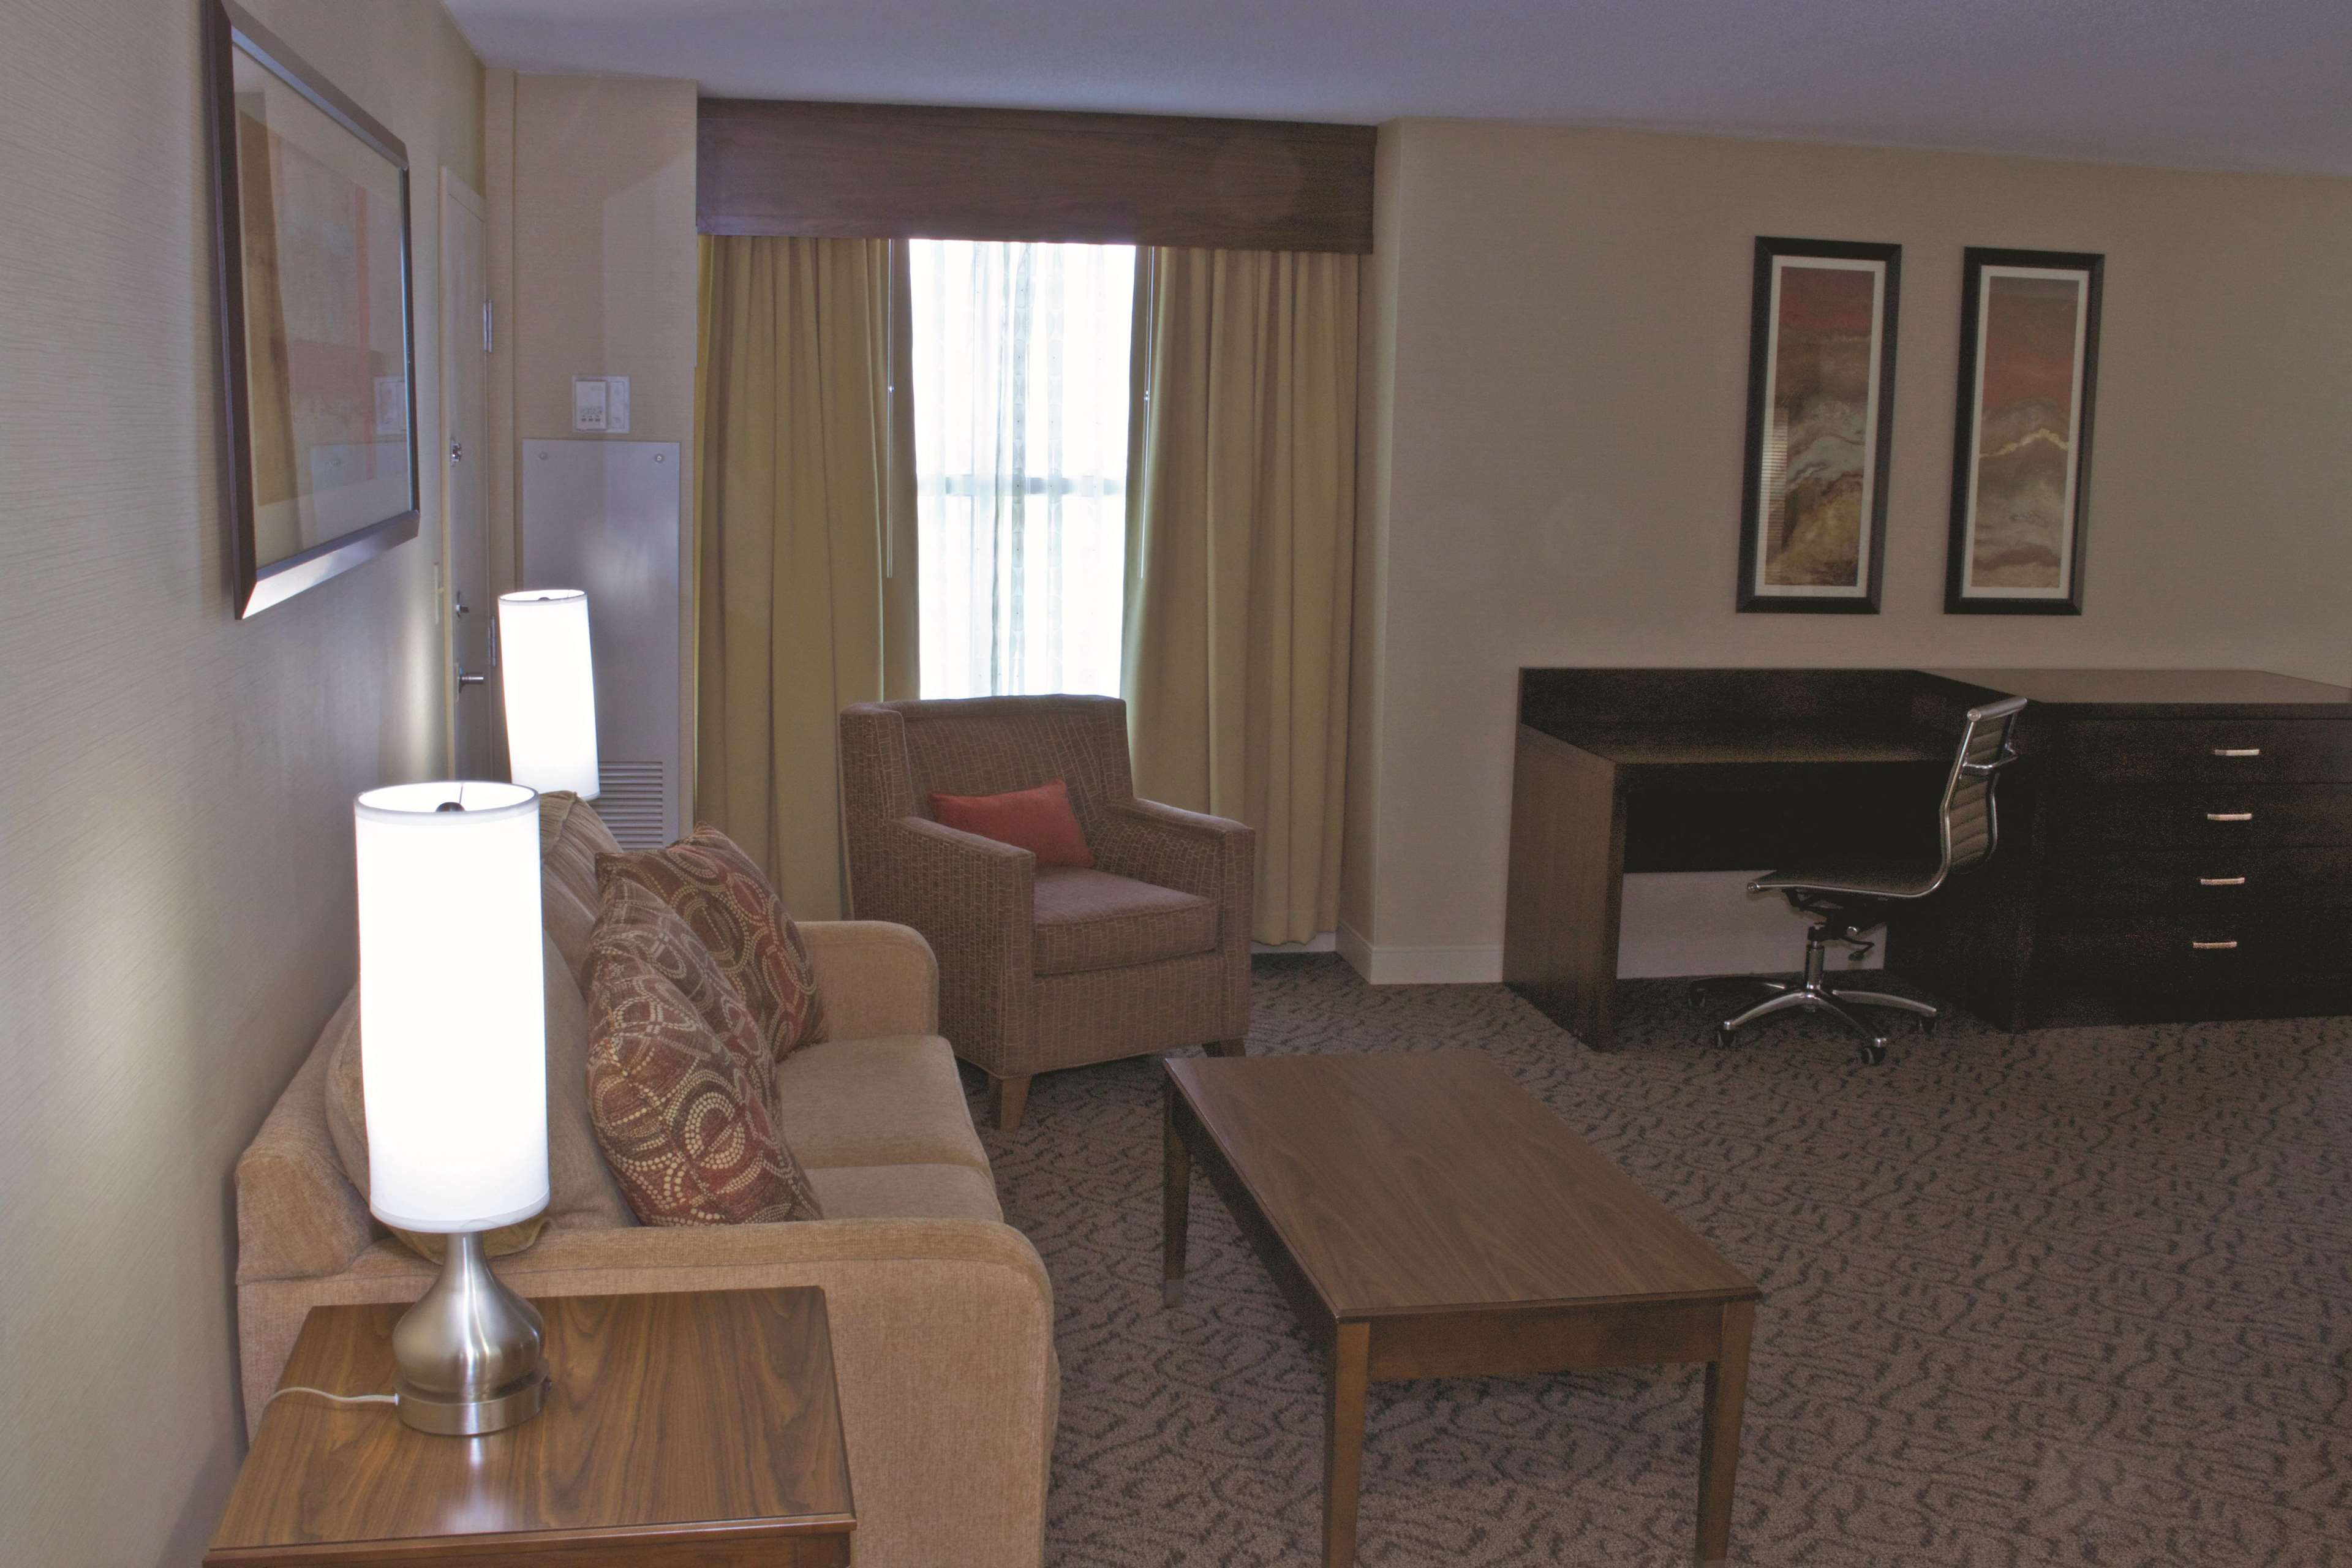 DoubleTree by Hilton Hotel Norfolk Airport image 11